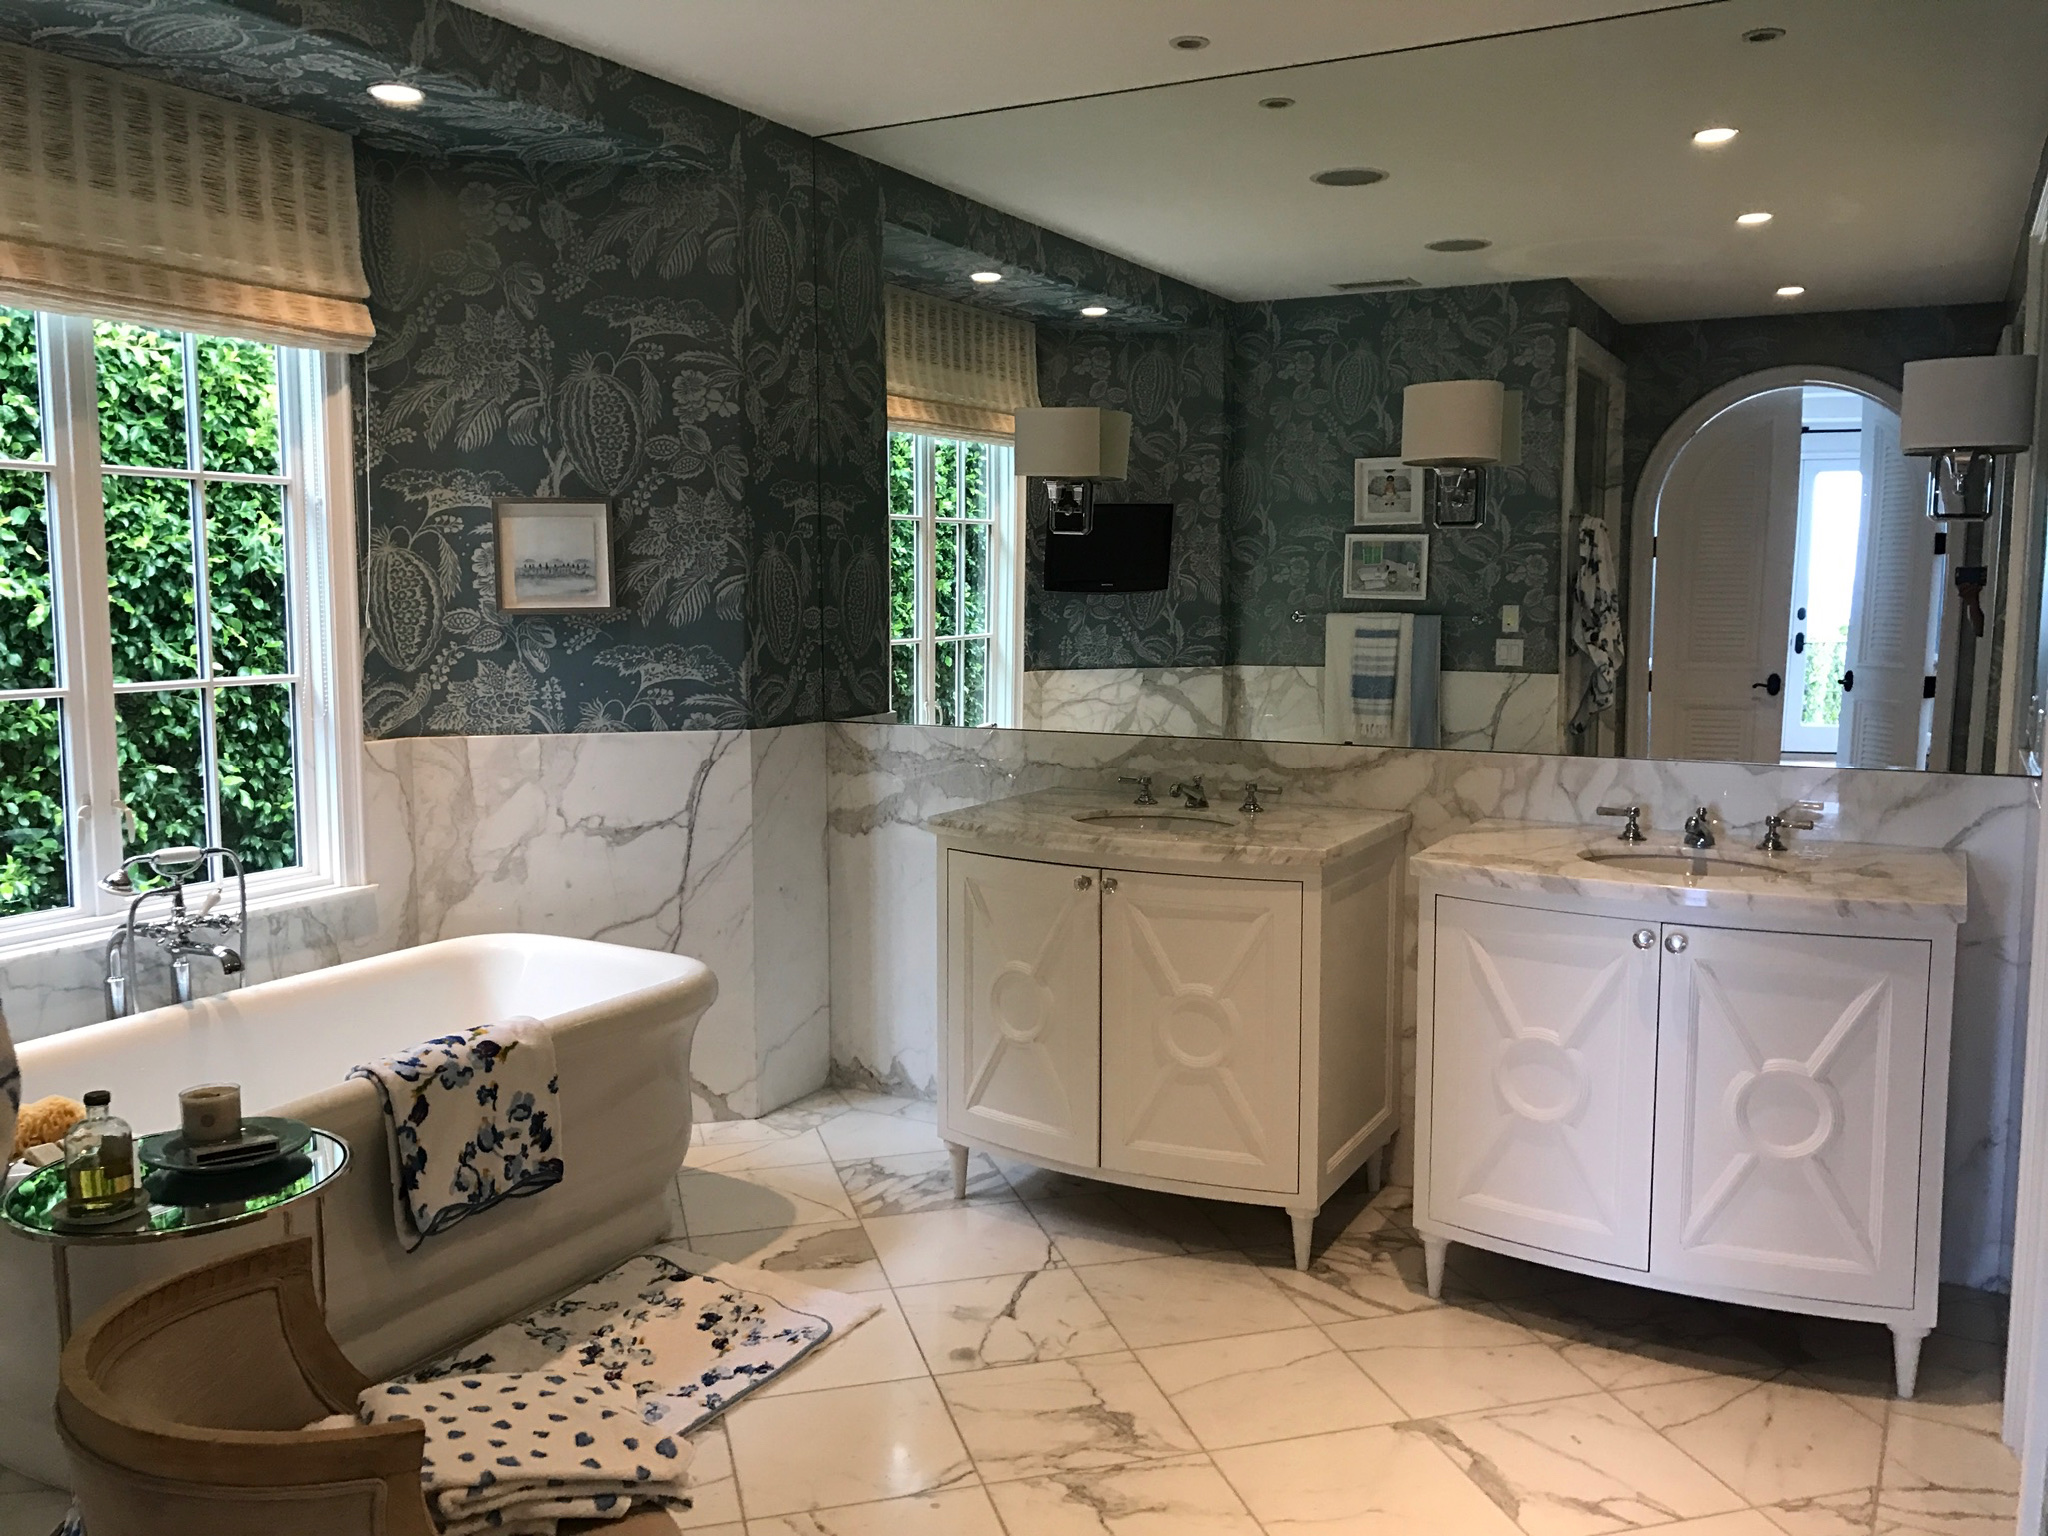 Master bathroom design with blue wallpaper and marble tiled floors. Standalone tub.